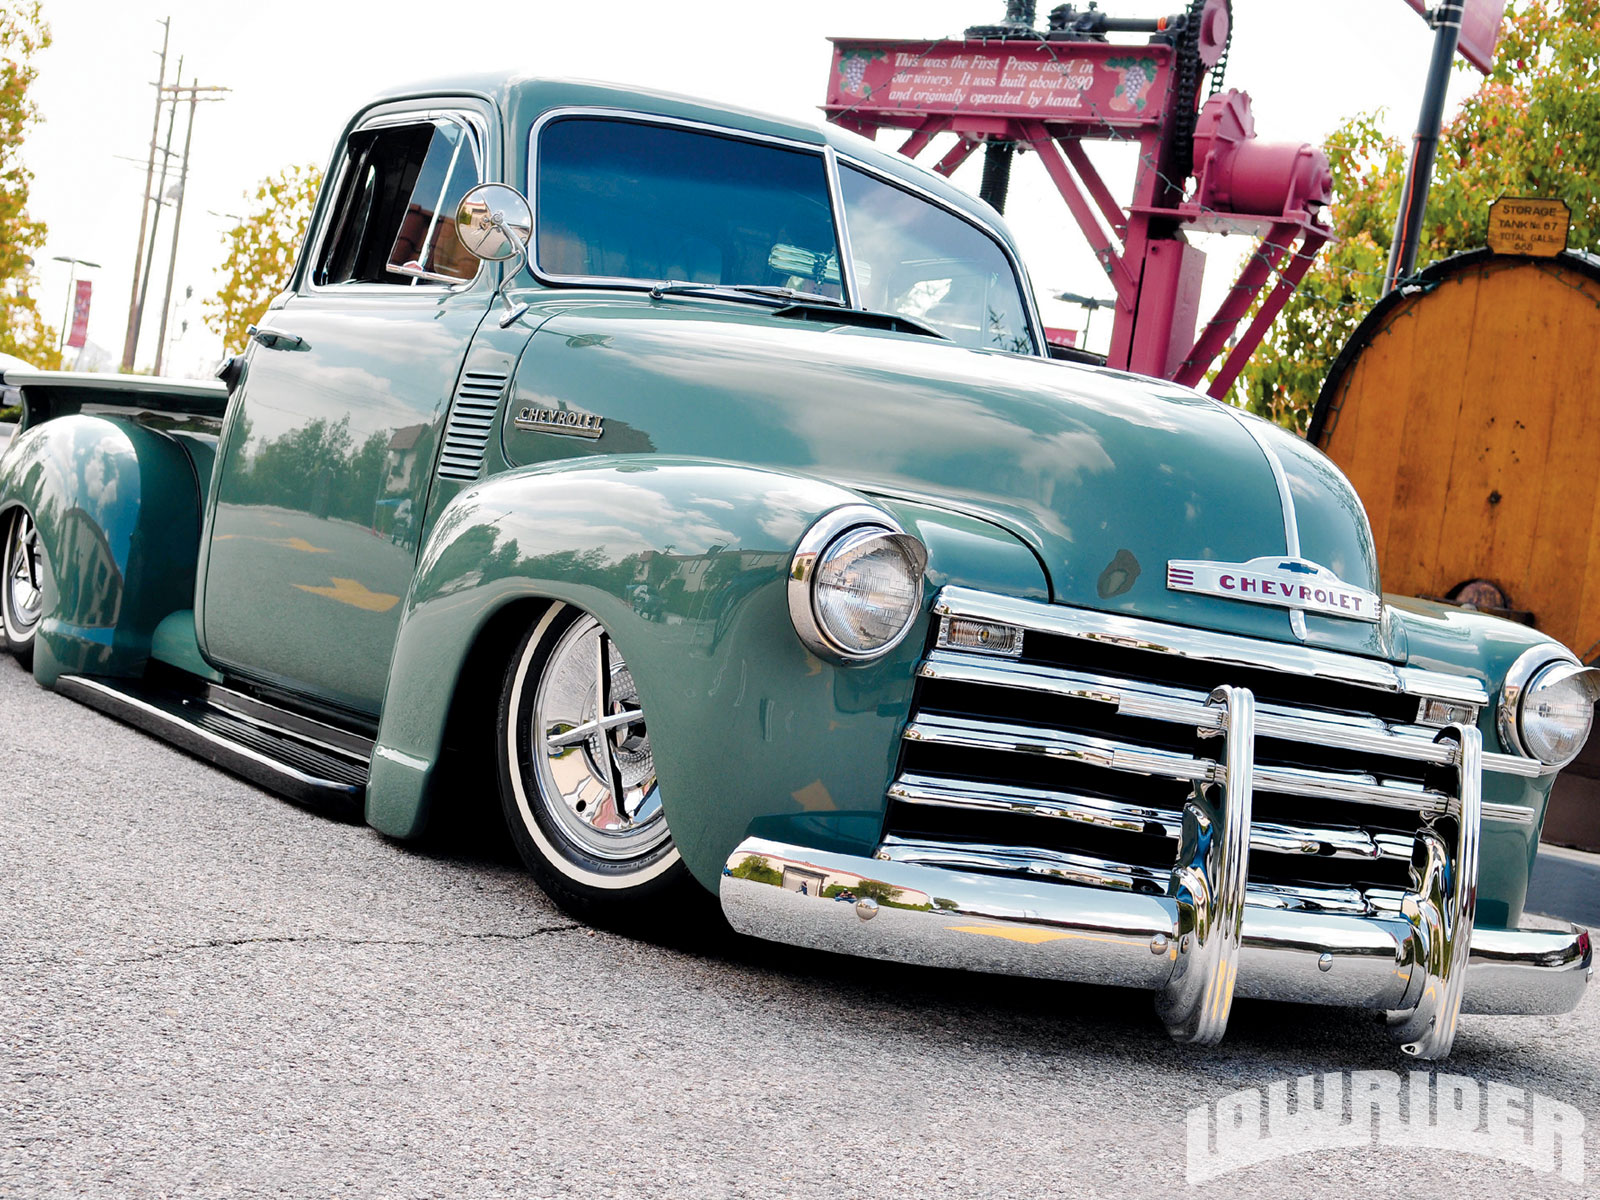 Lowrider Rims And Tires >> 1952 Chevrolet Truck - Lowrider Magazine